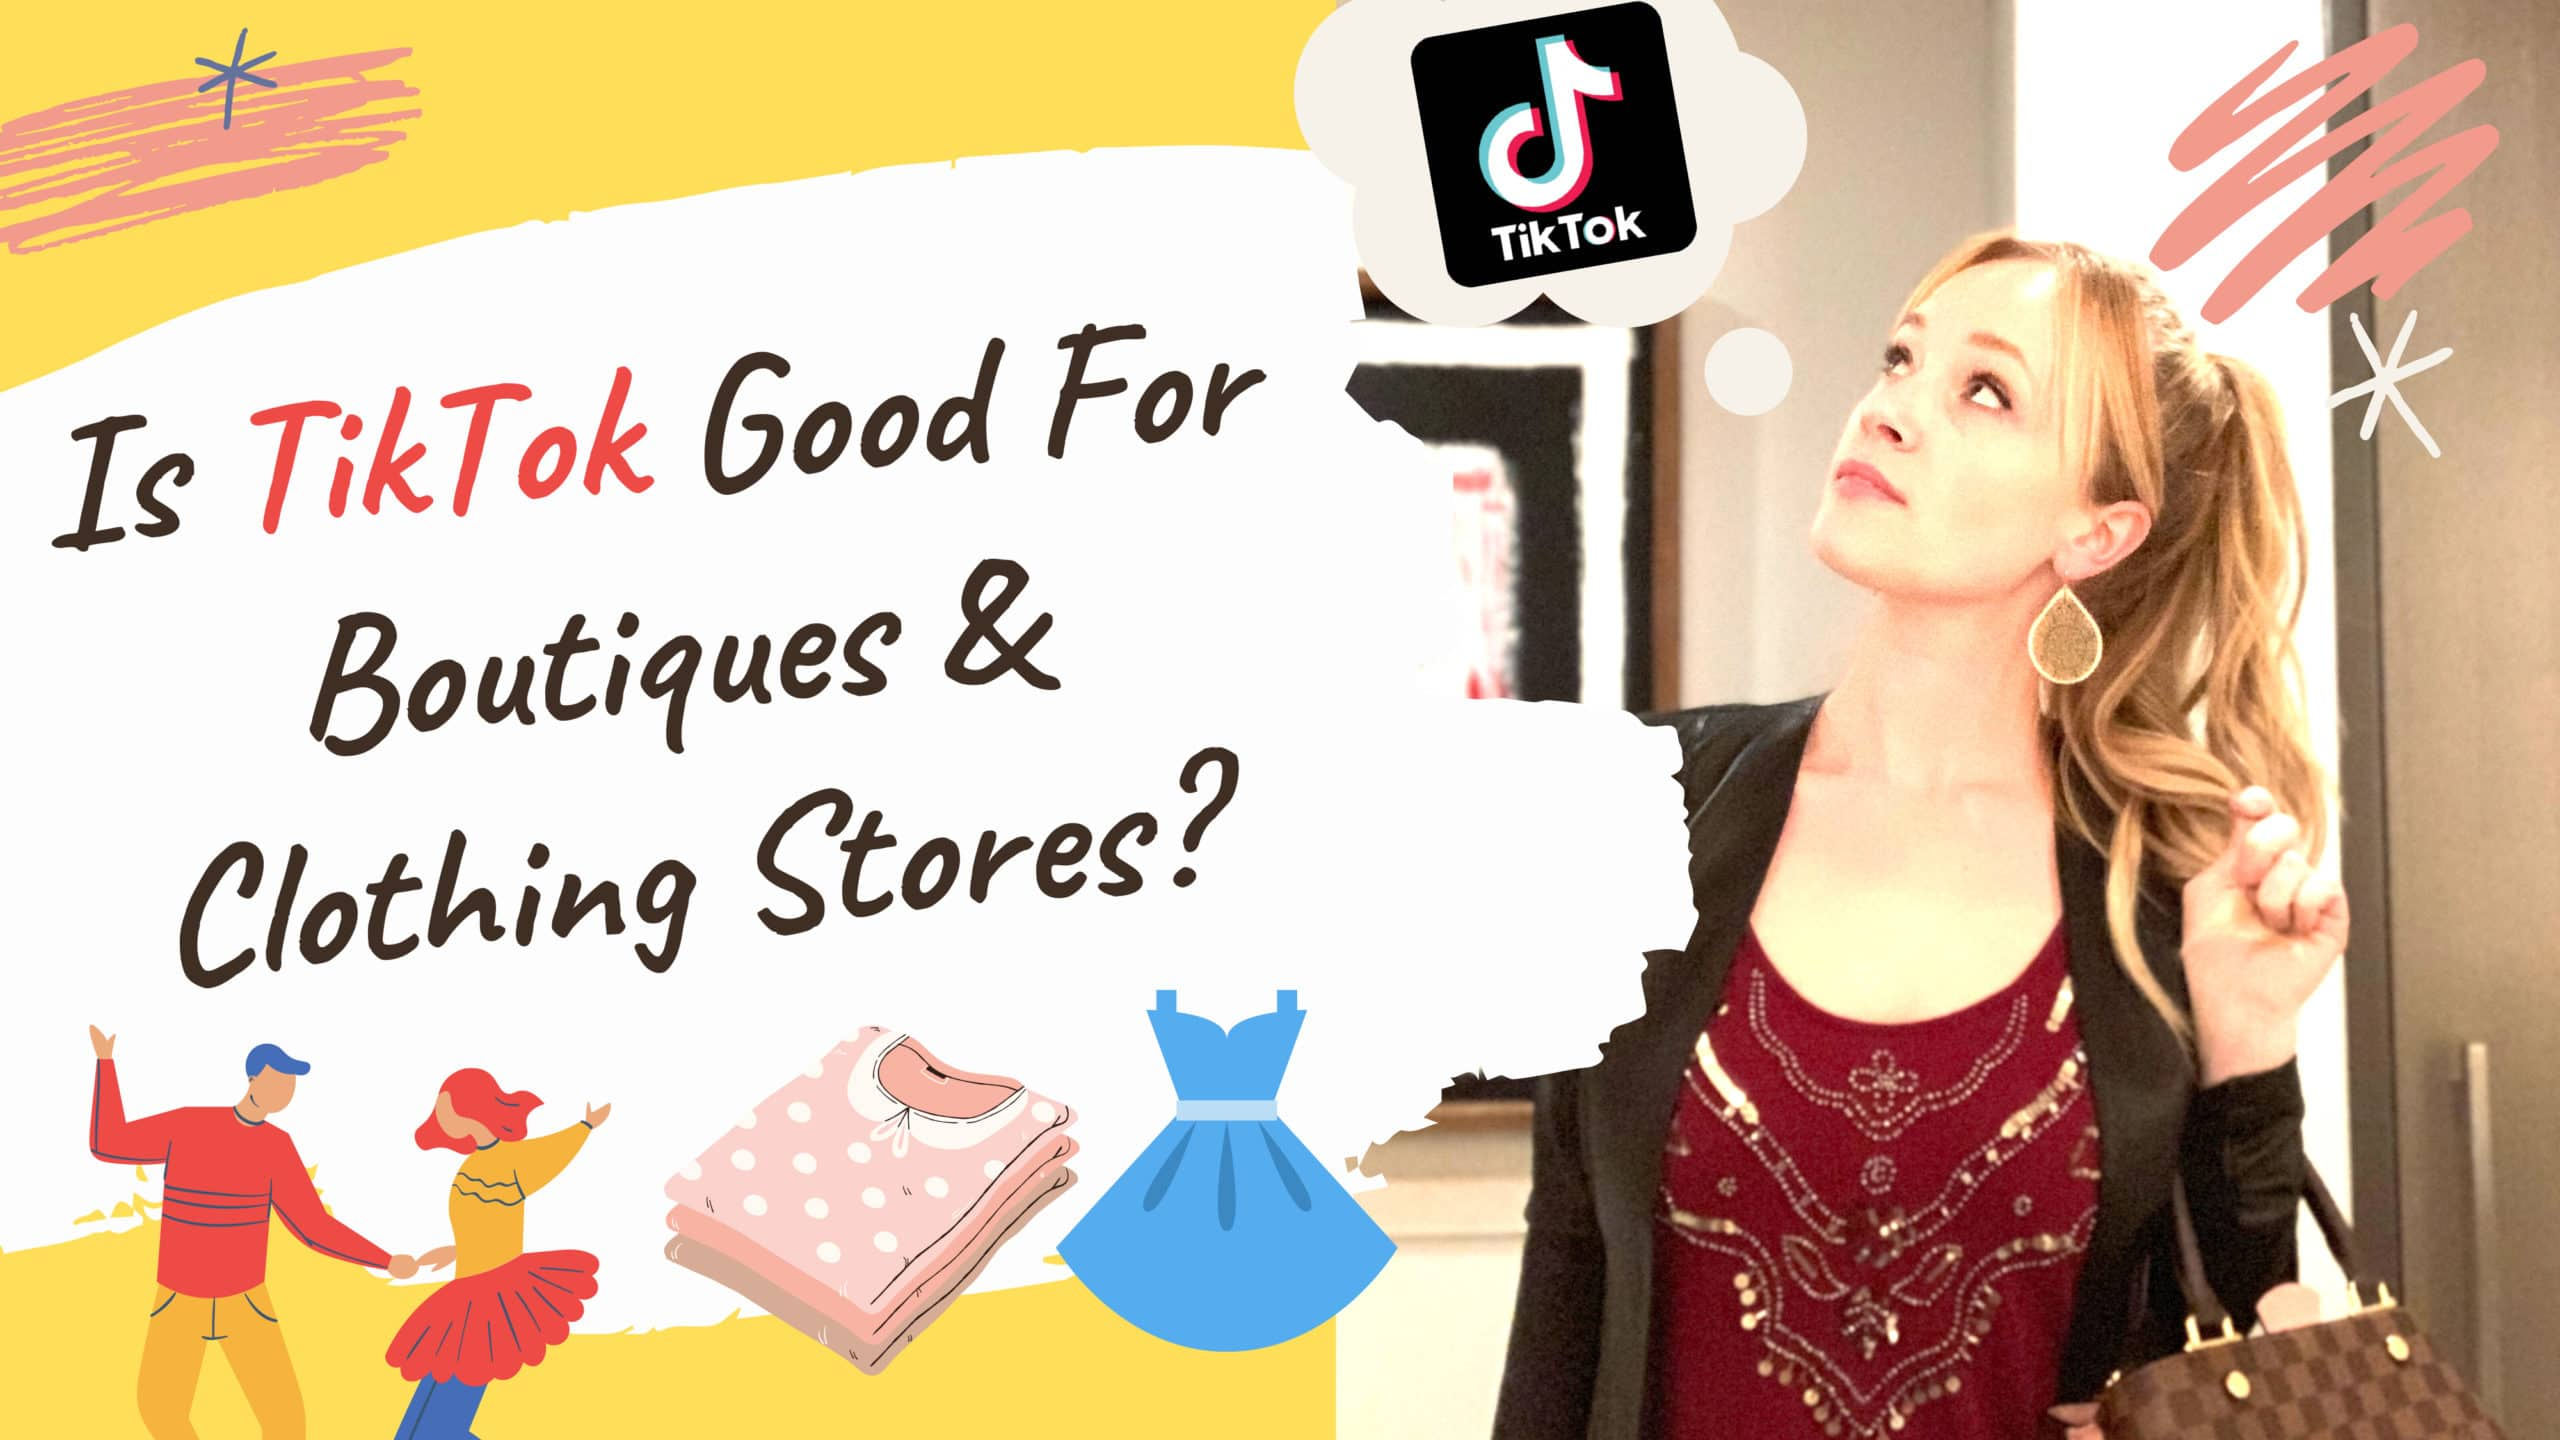 Is TikTok Good for Boutiques and Clothing Stores?